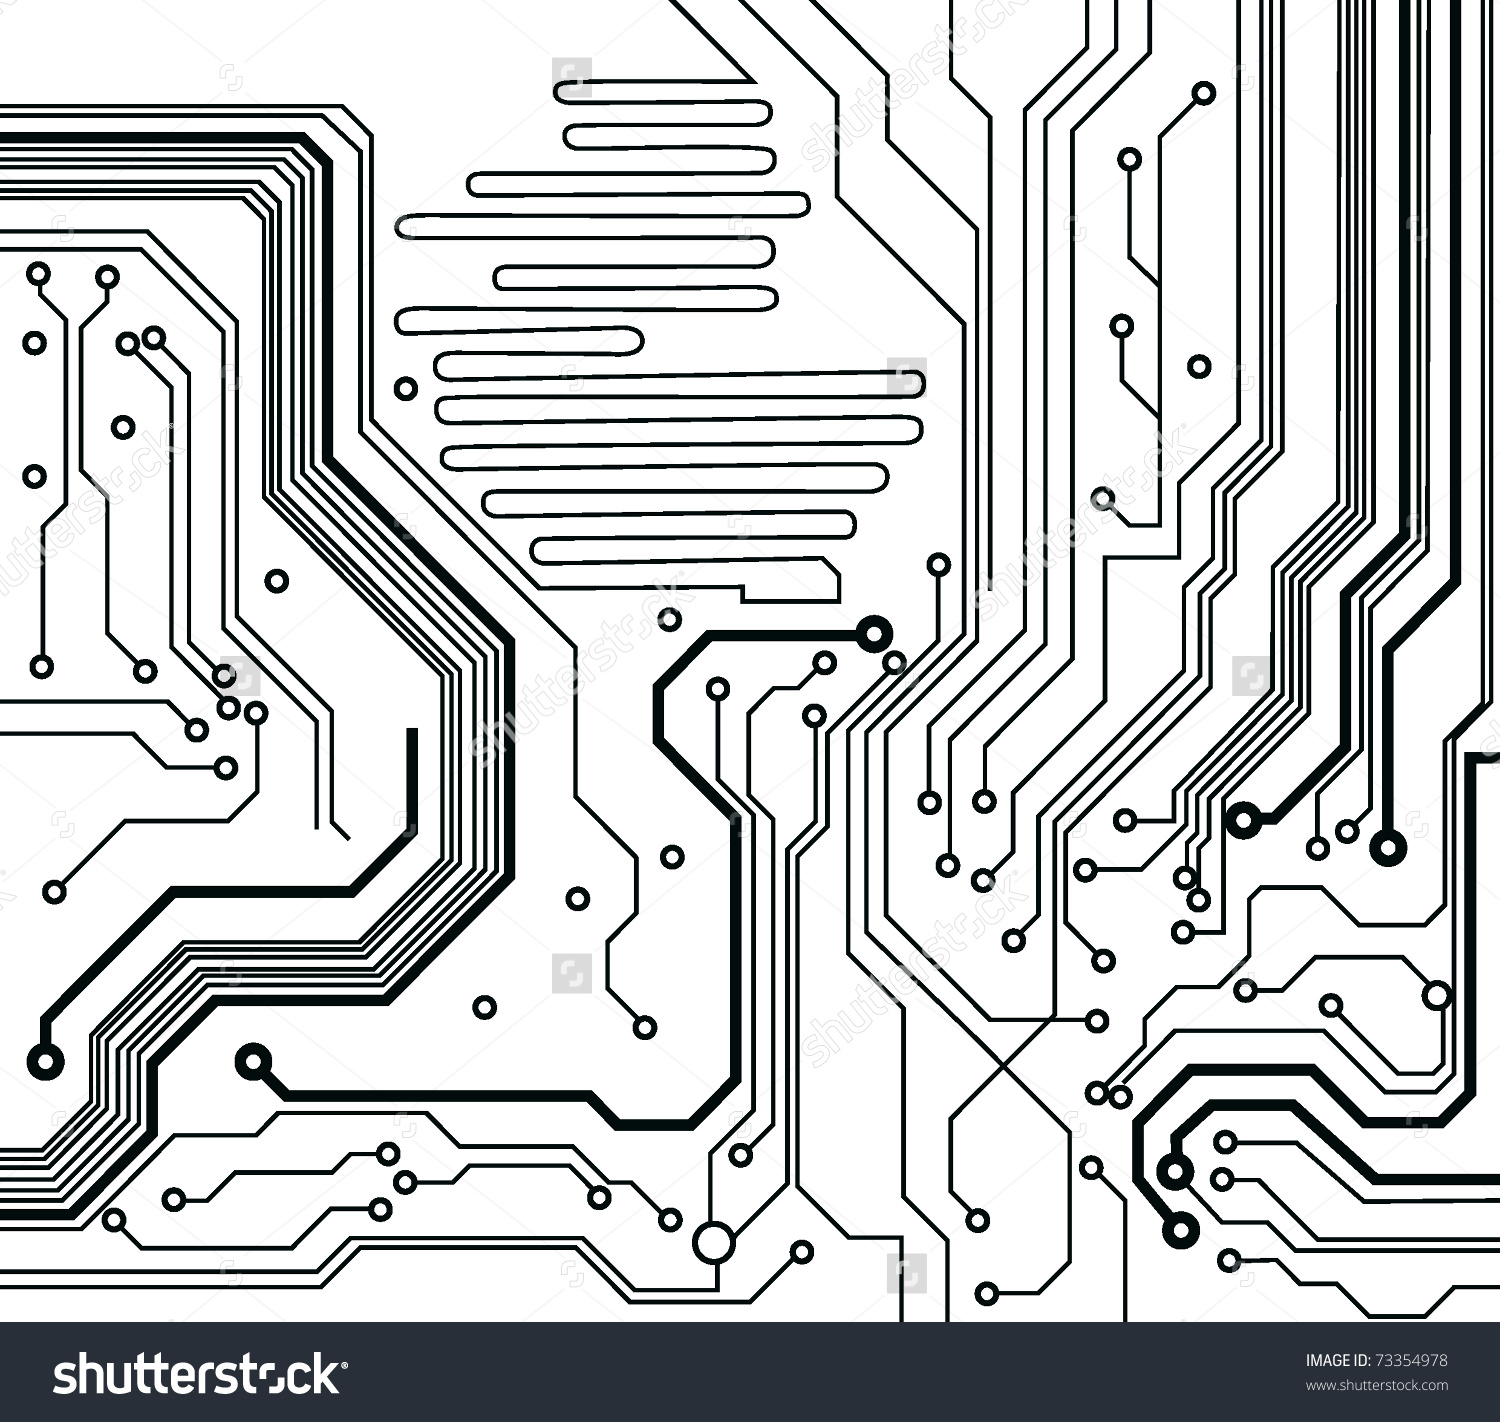 Circuit Board Pattern Blackandwhite Vector Illustration Stock.